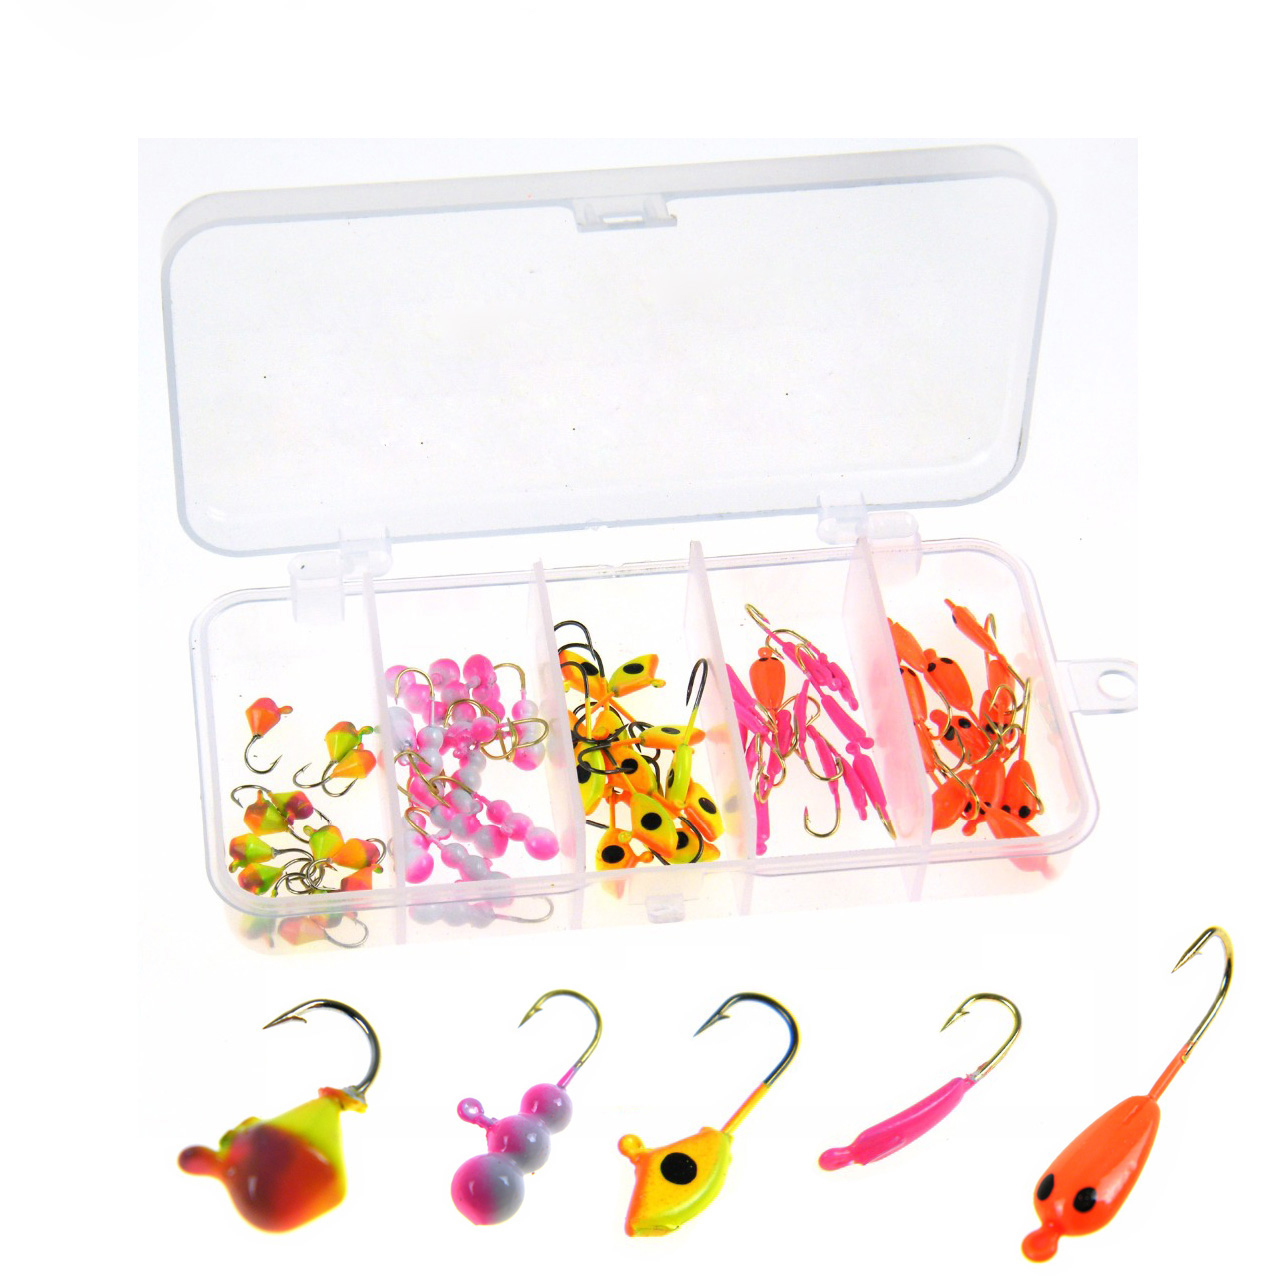 70Pcs HKFISH 0.75g-1.24g Random Style Ice Fishing Ant Drop Jig Head Single Hooks Fishing... by Ice Fishing Supplies